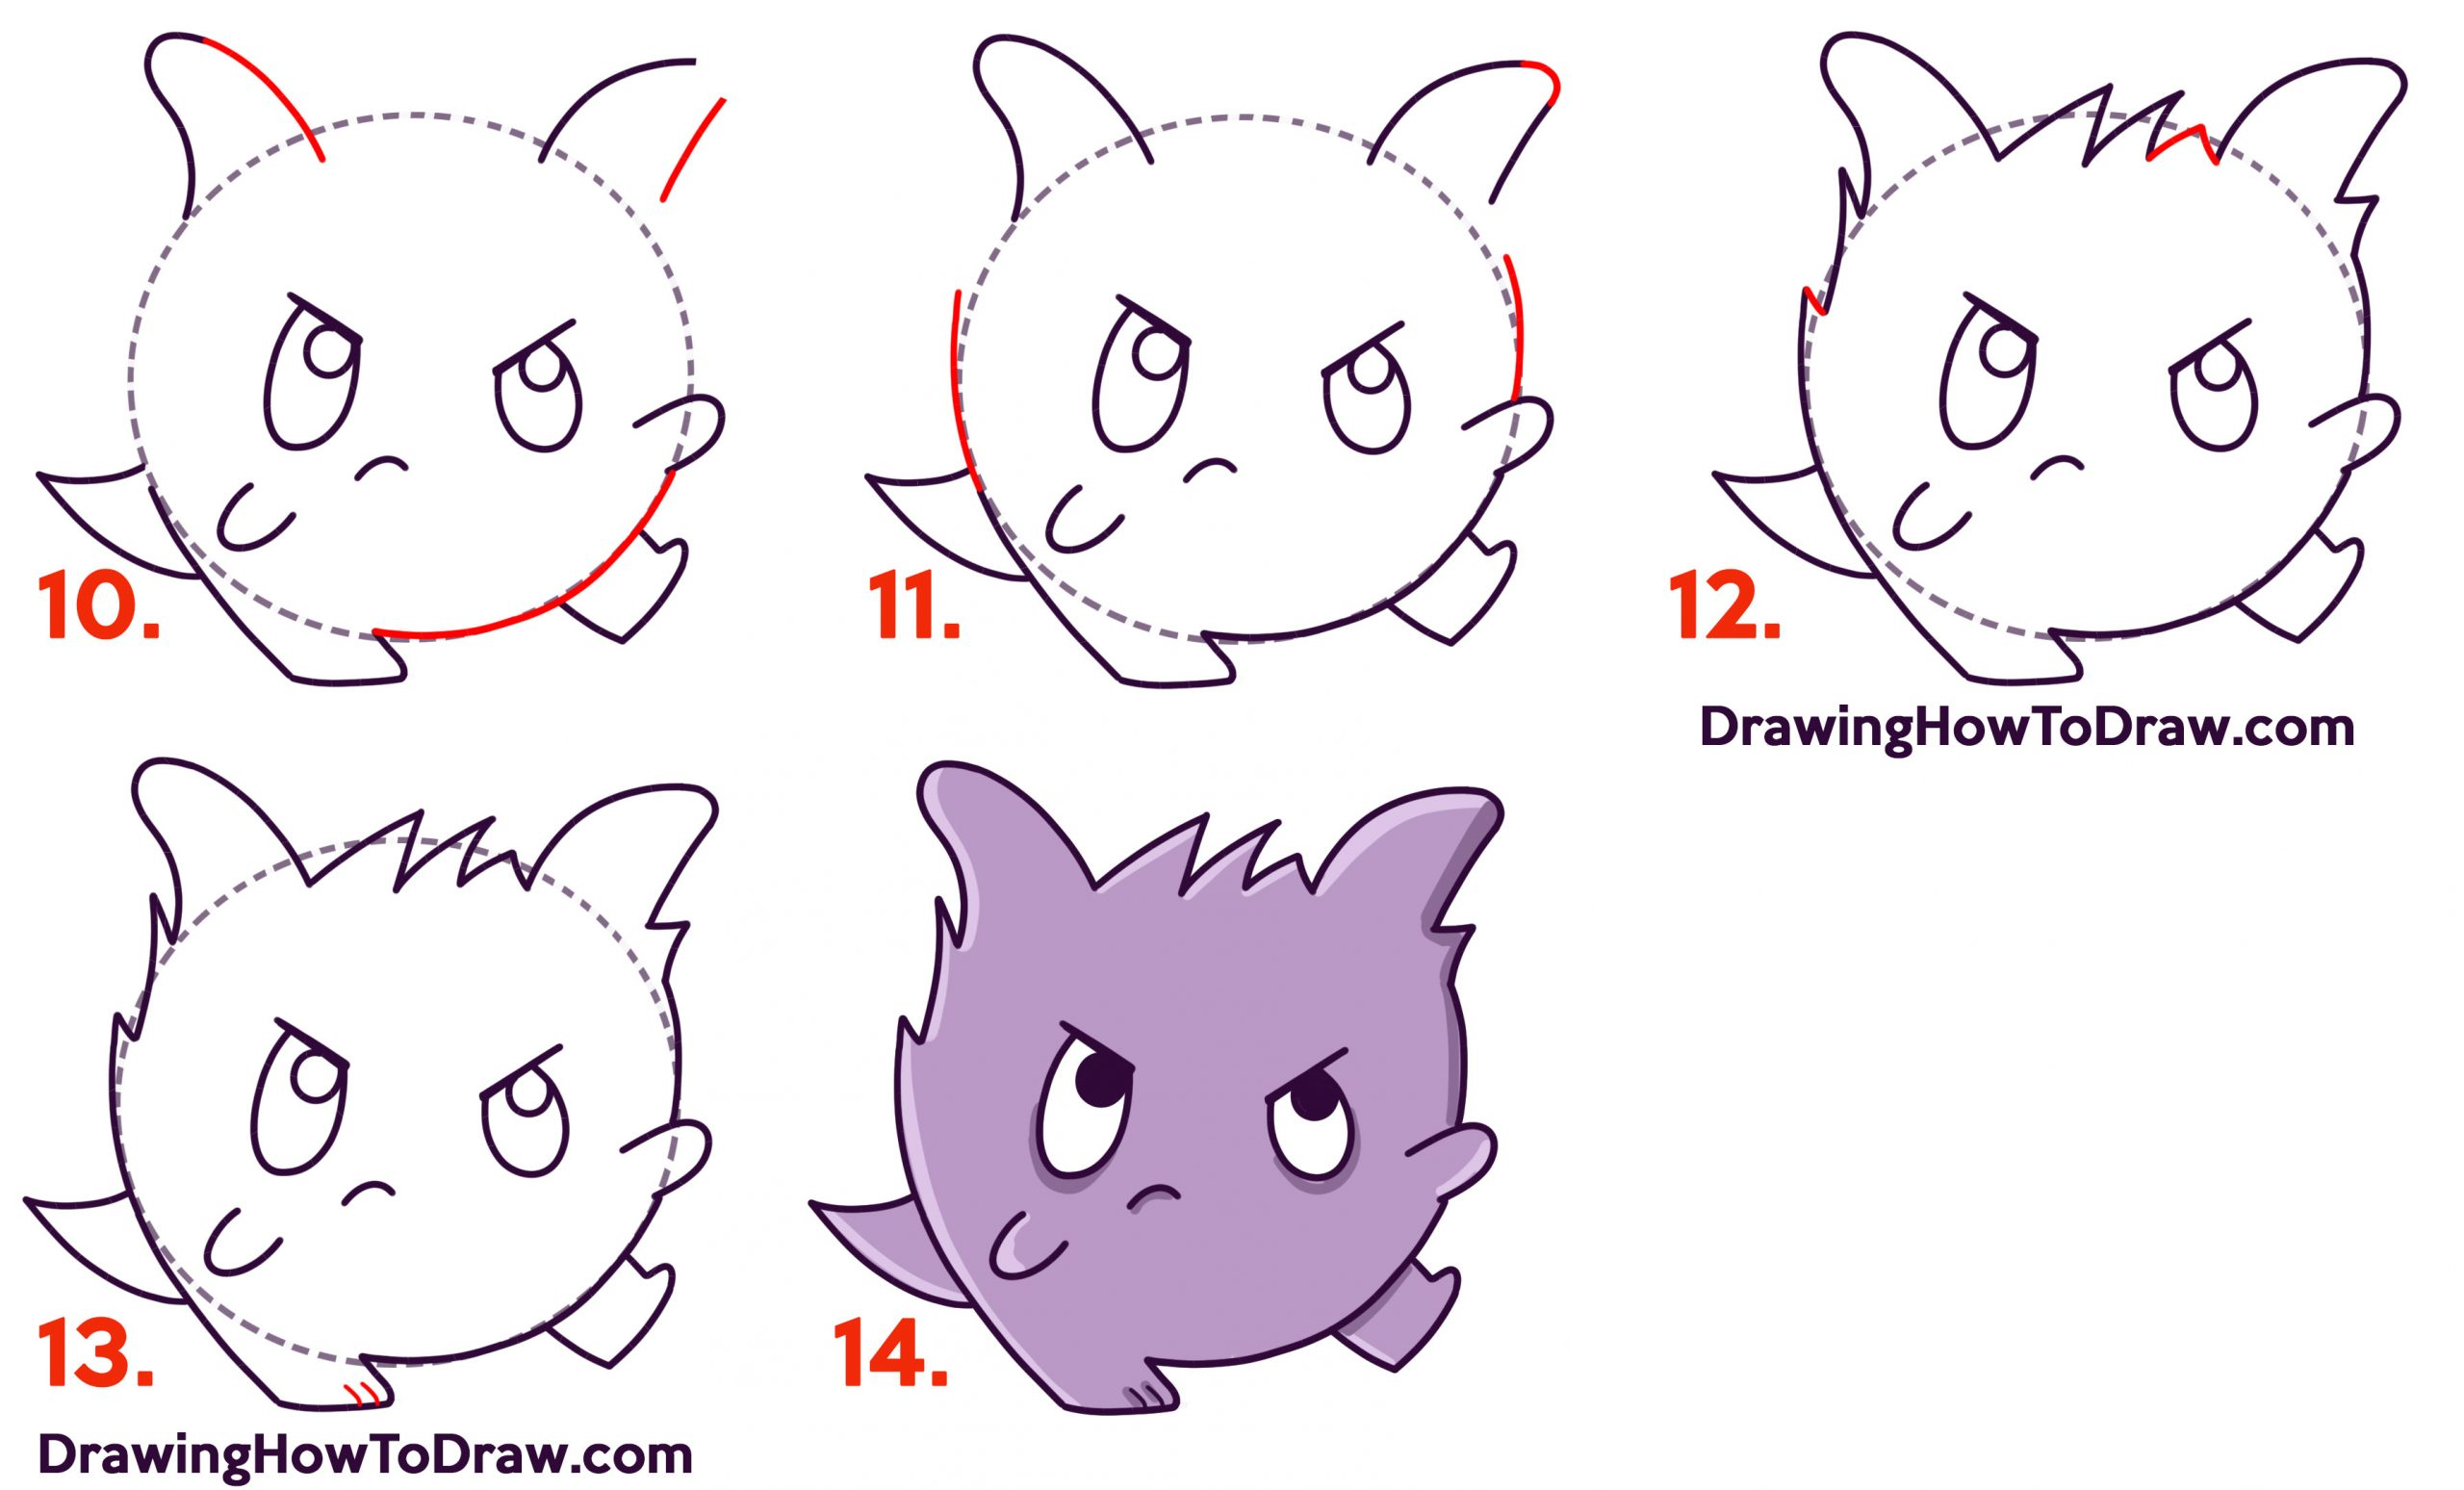 learn how to draw cute chibi kawaii gengar pokemon simple lesson for kids